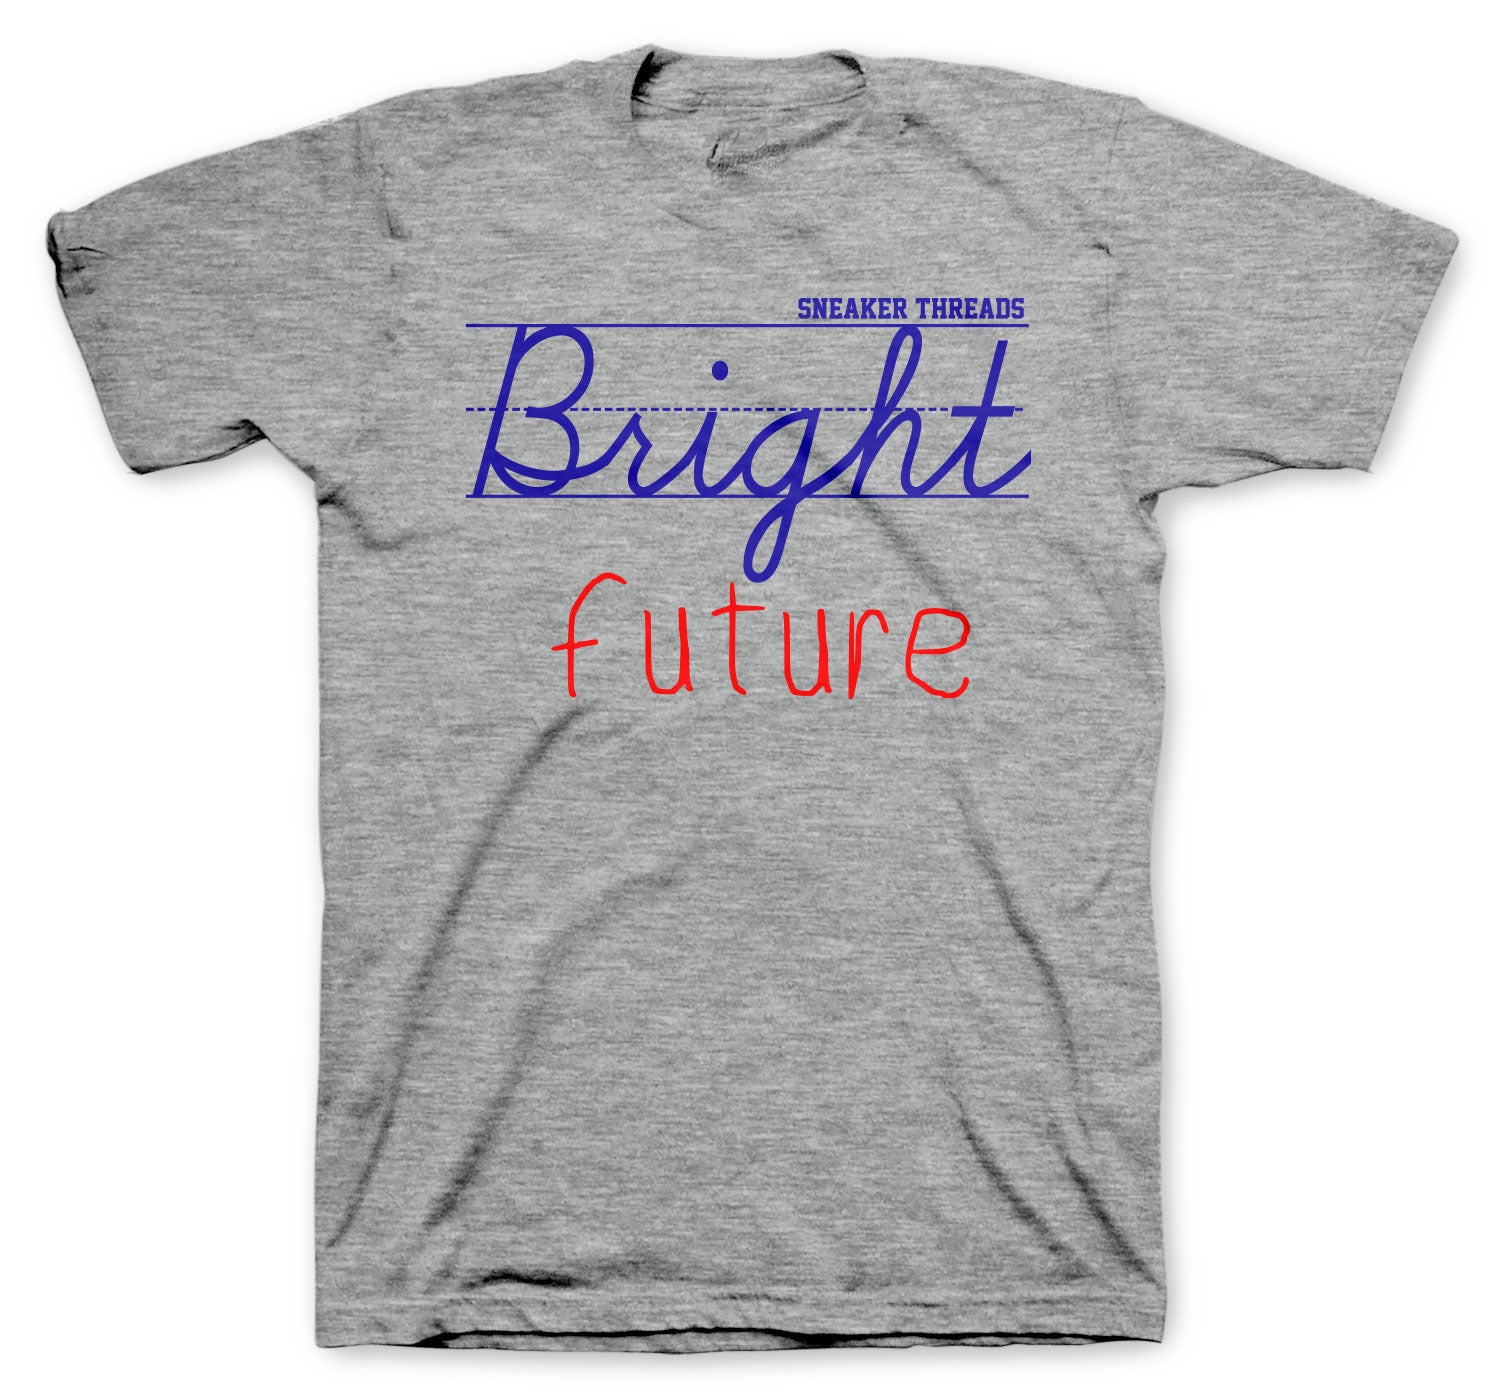 All Star 2020 Tune Squad Shirt  - Bright Future - Heather Grey